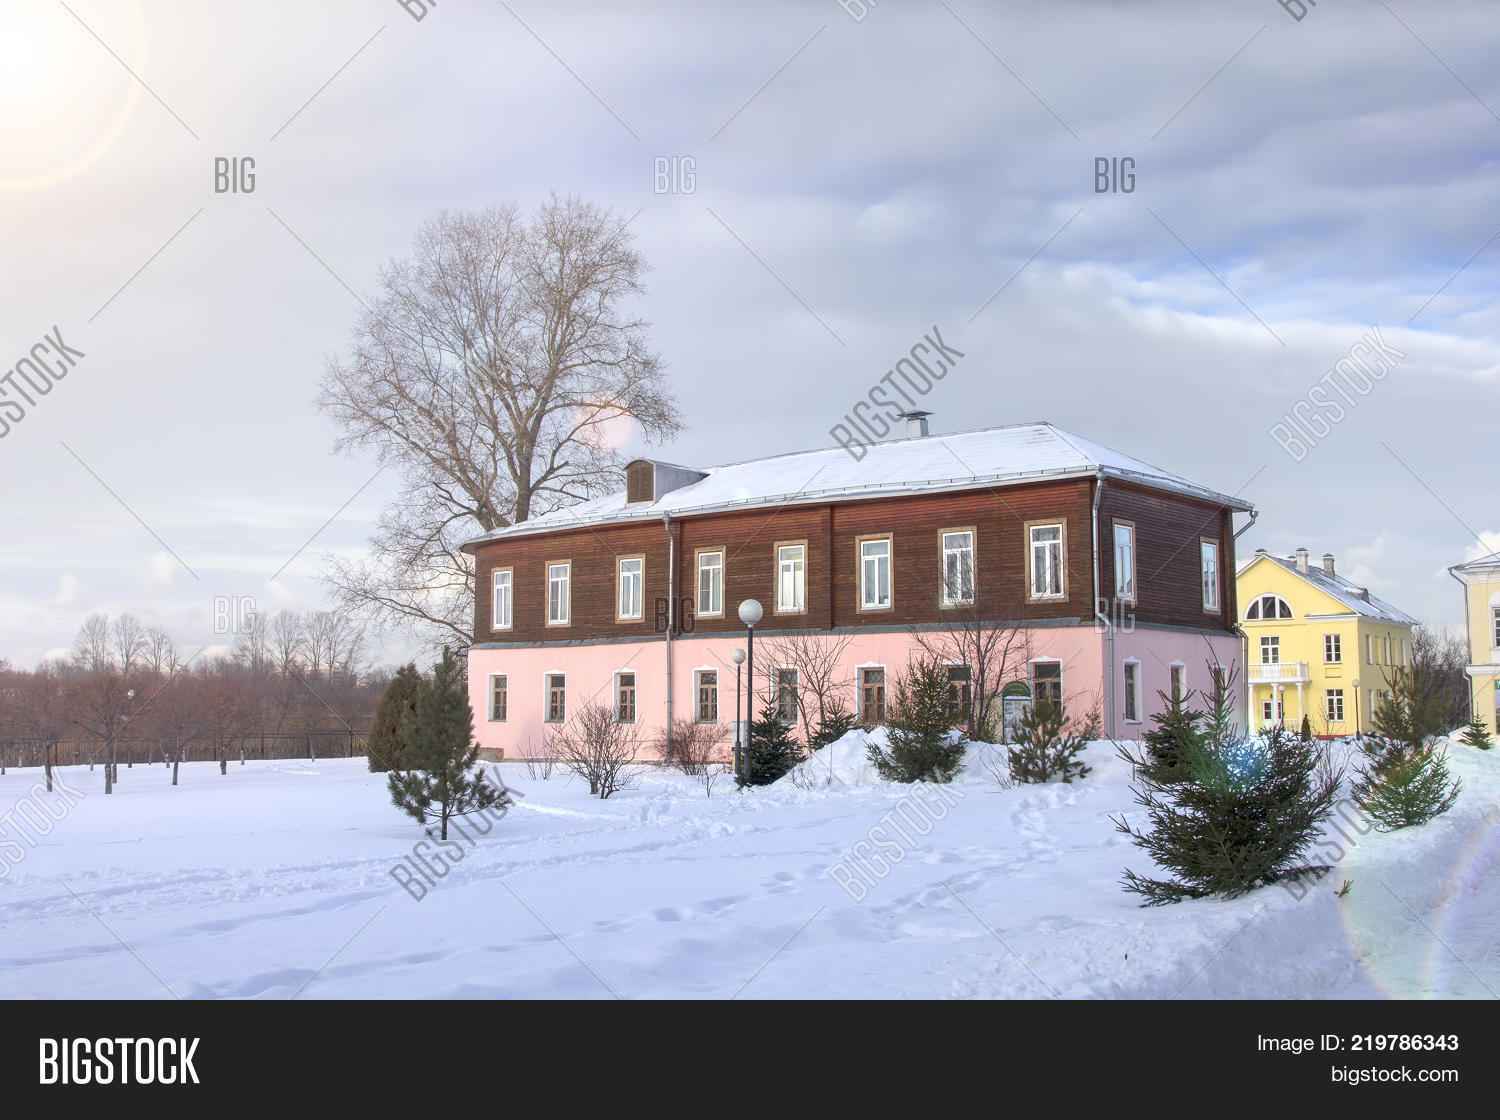 Manor Sviblovo in Moscow: description, history and interesting facts 61